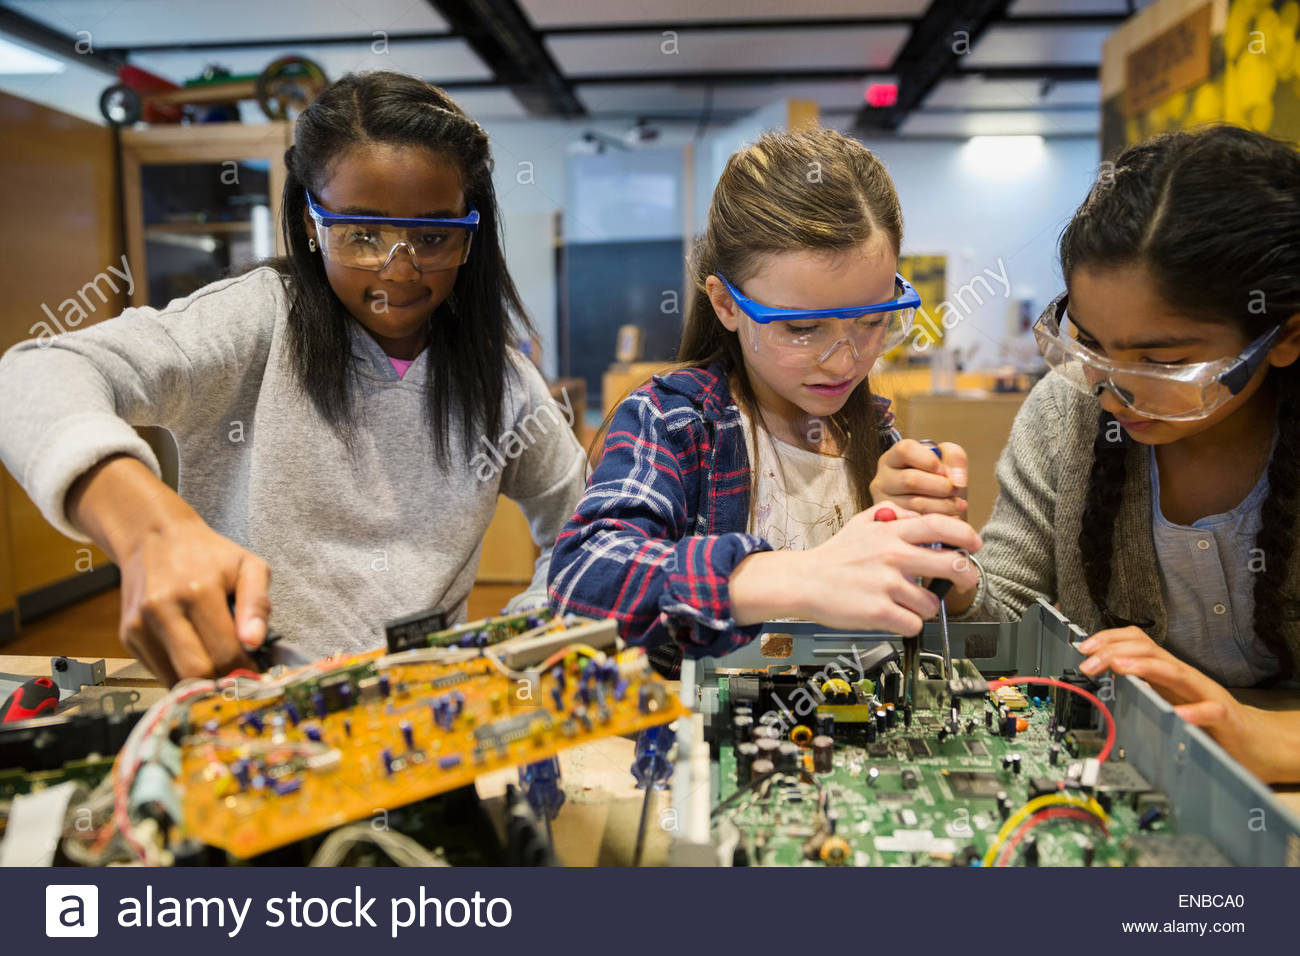 Students in goggles assembling electronics at science center - Stock Image